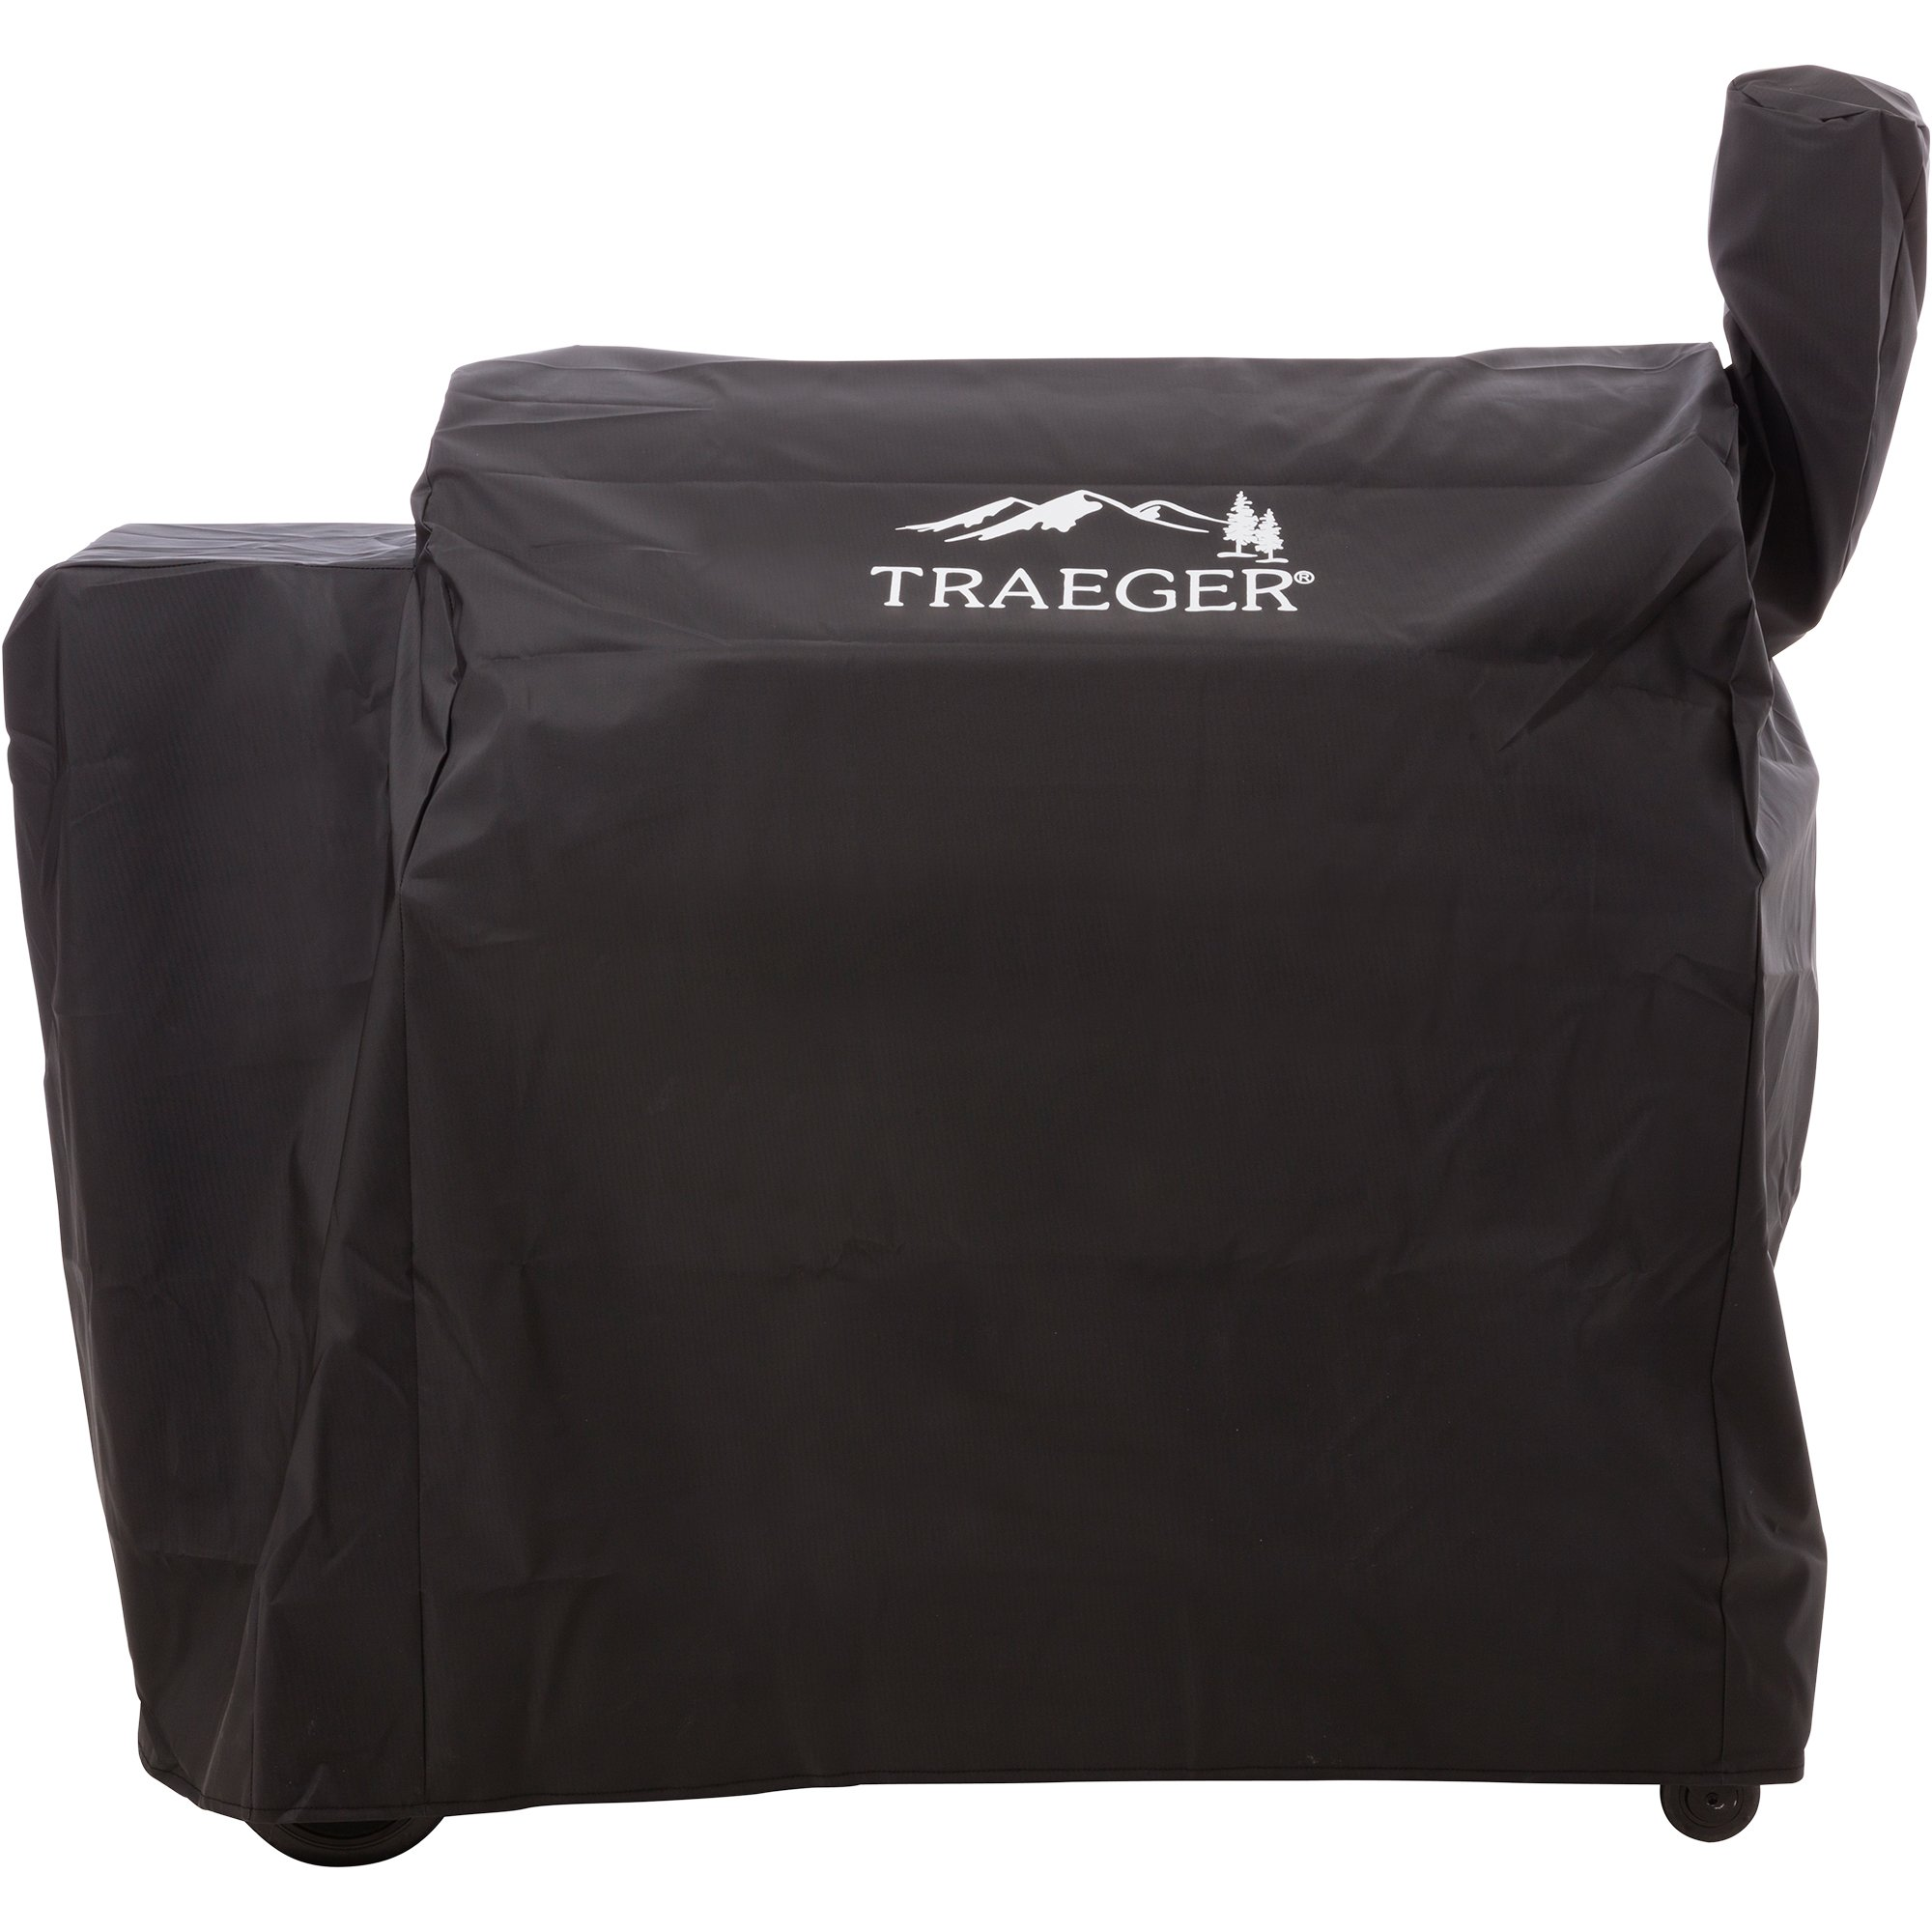 Traeger BAC380 34 Series Full Length Grill Cover by Traeger